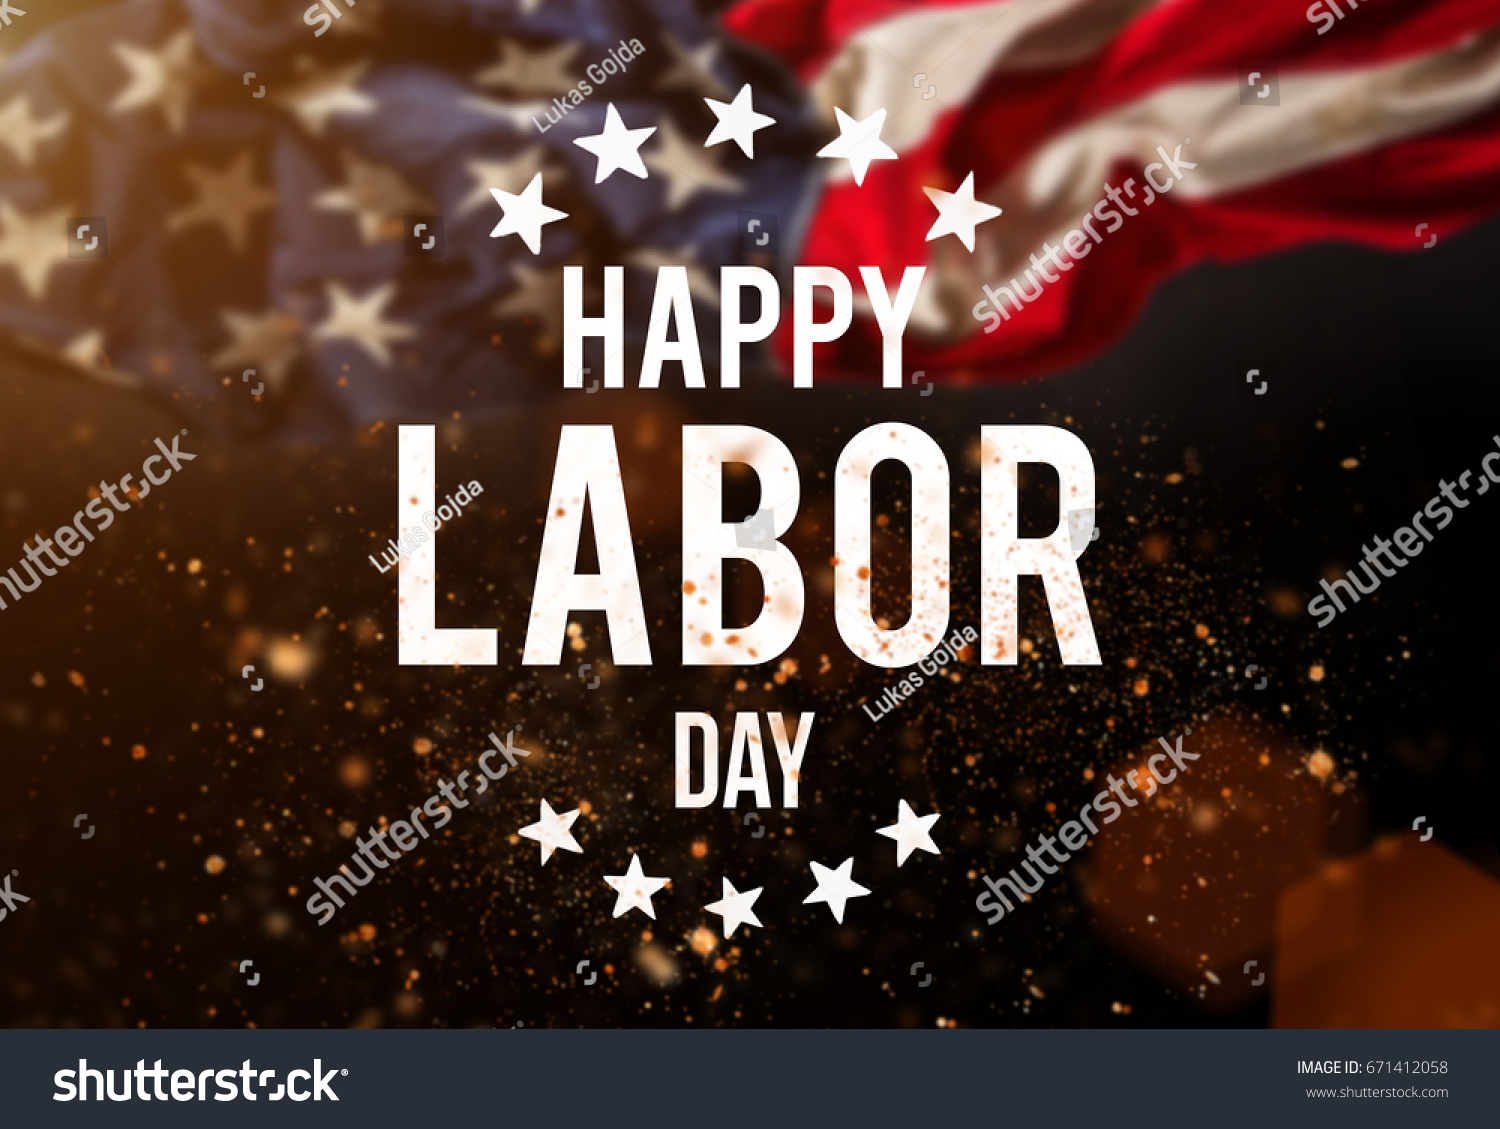 Happy Labor day banner, american patriotic background #671412058